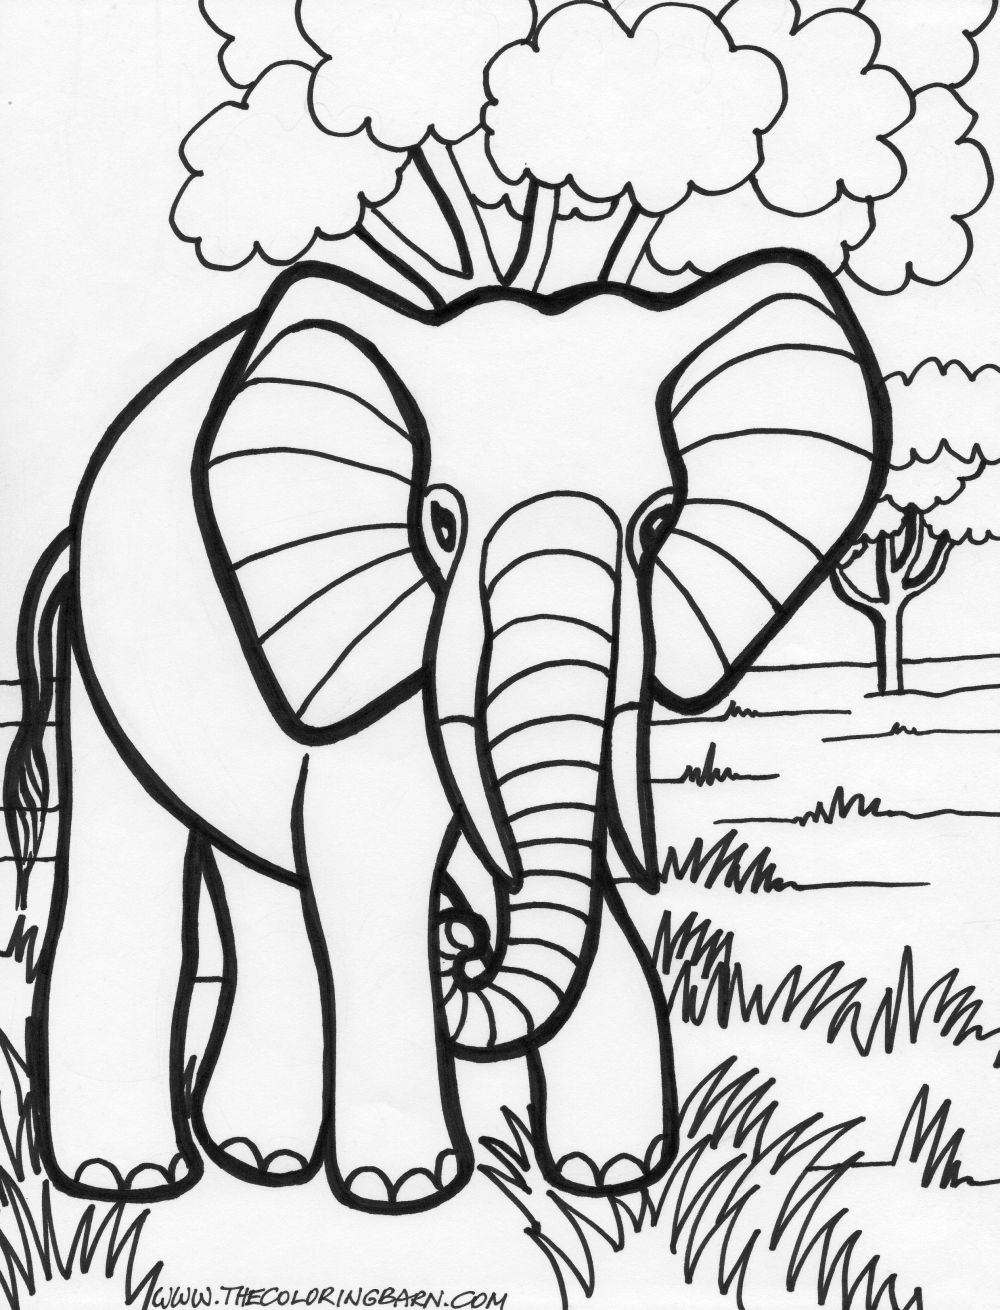 Elephant coloring pages printables free coloring page printable.